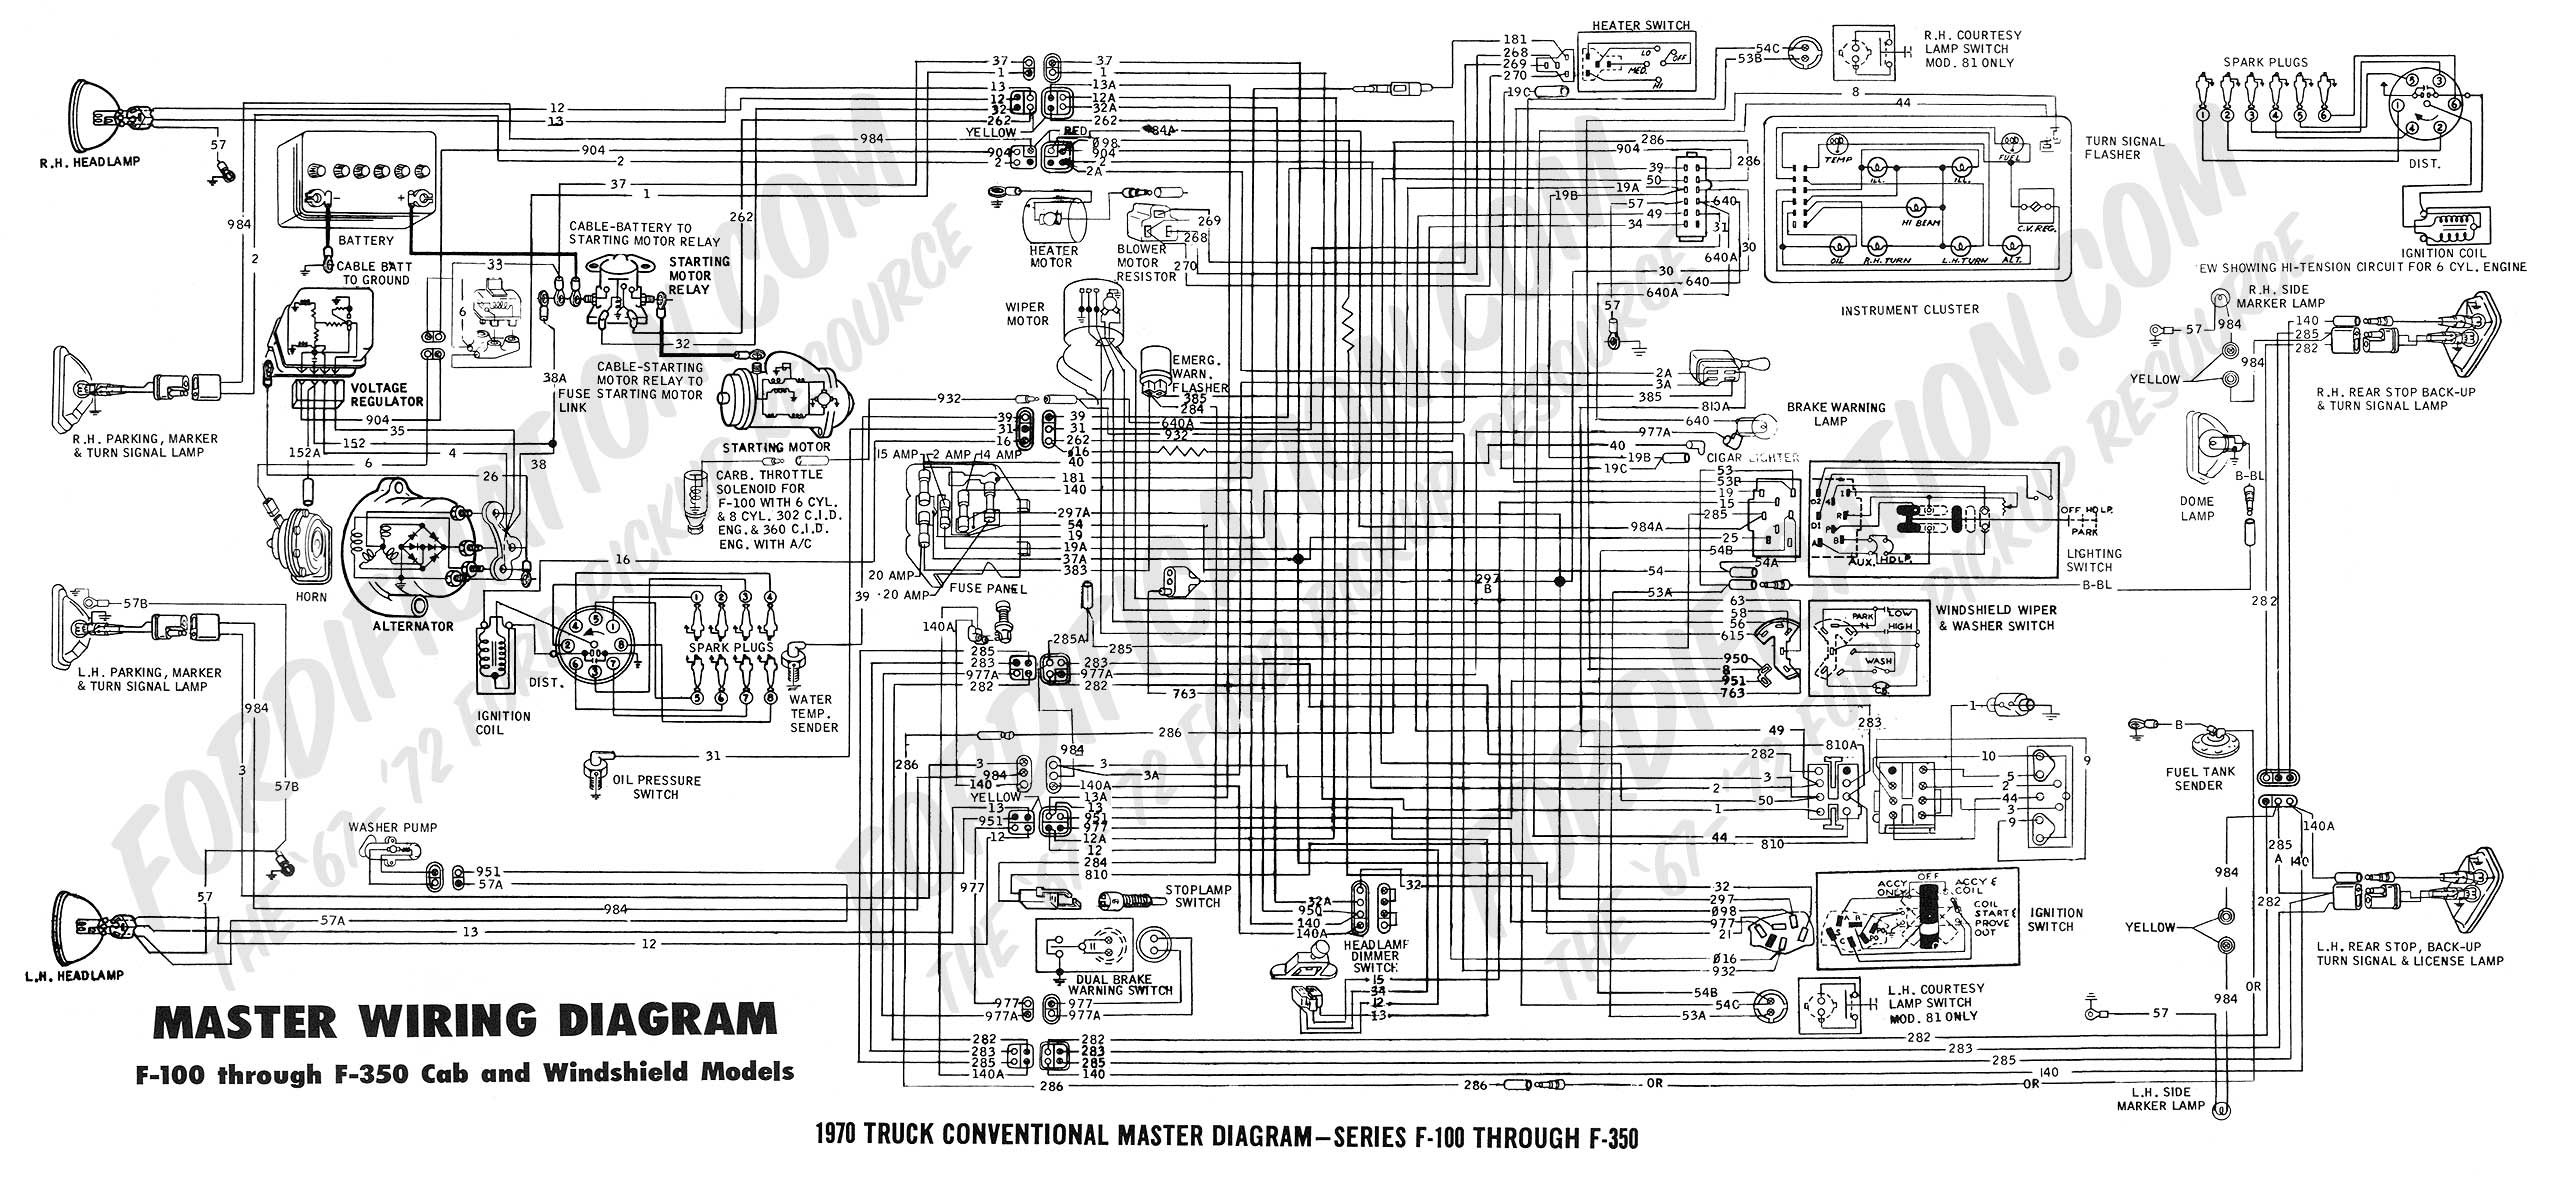 1990 ford f350 wiring diagram trusted wiring diagrams rh kroud co f150 wiring diagram 2005 f150 wiring diagram 1997